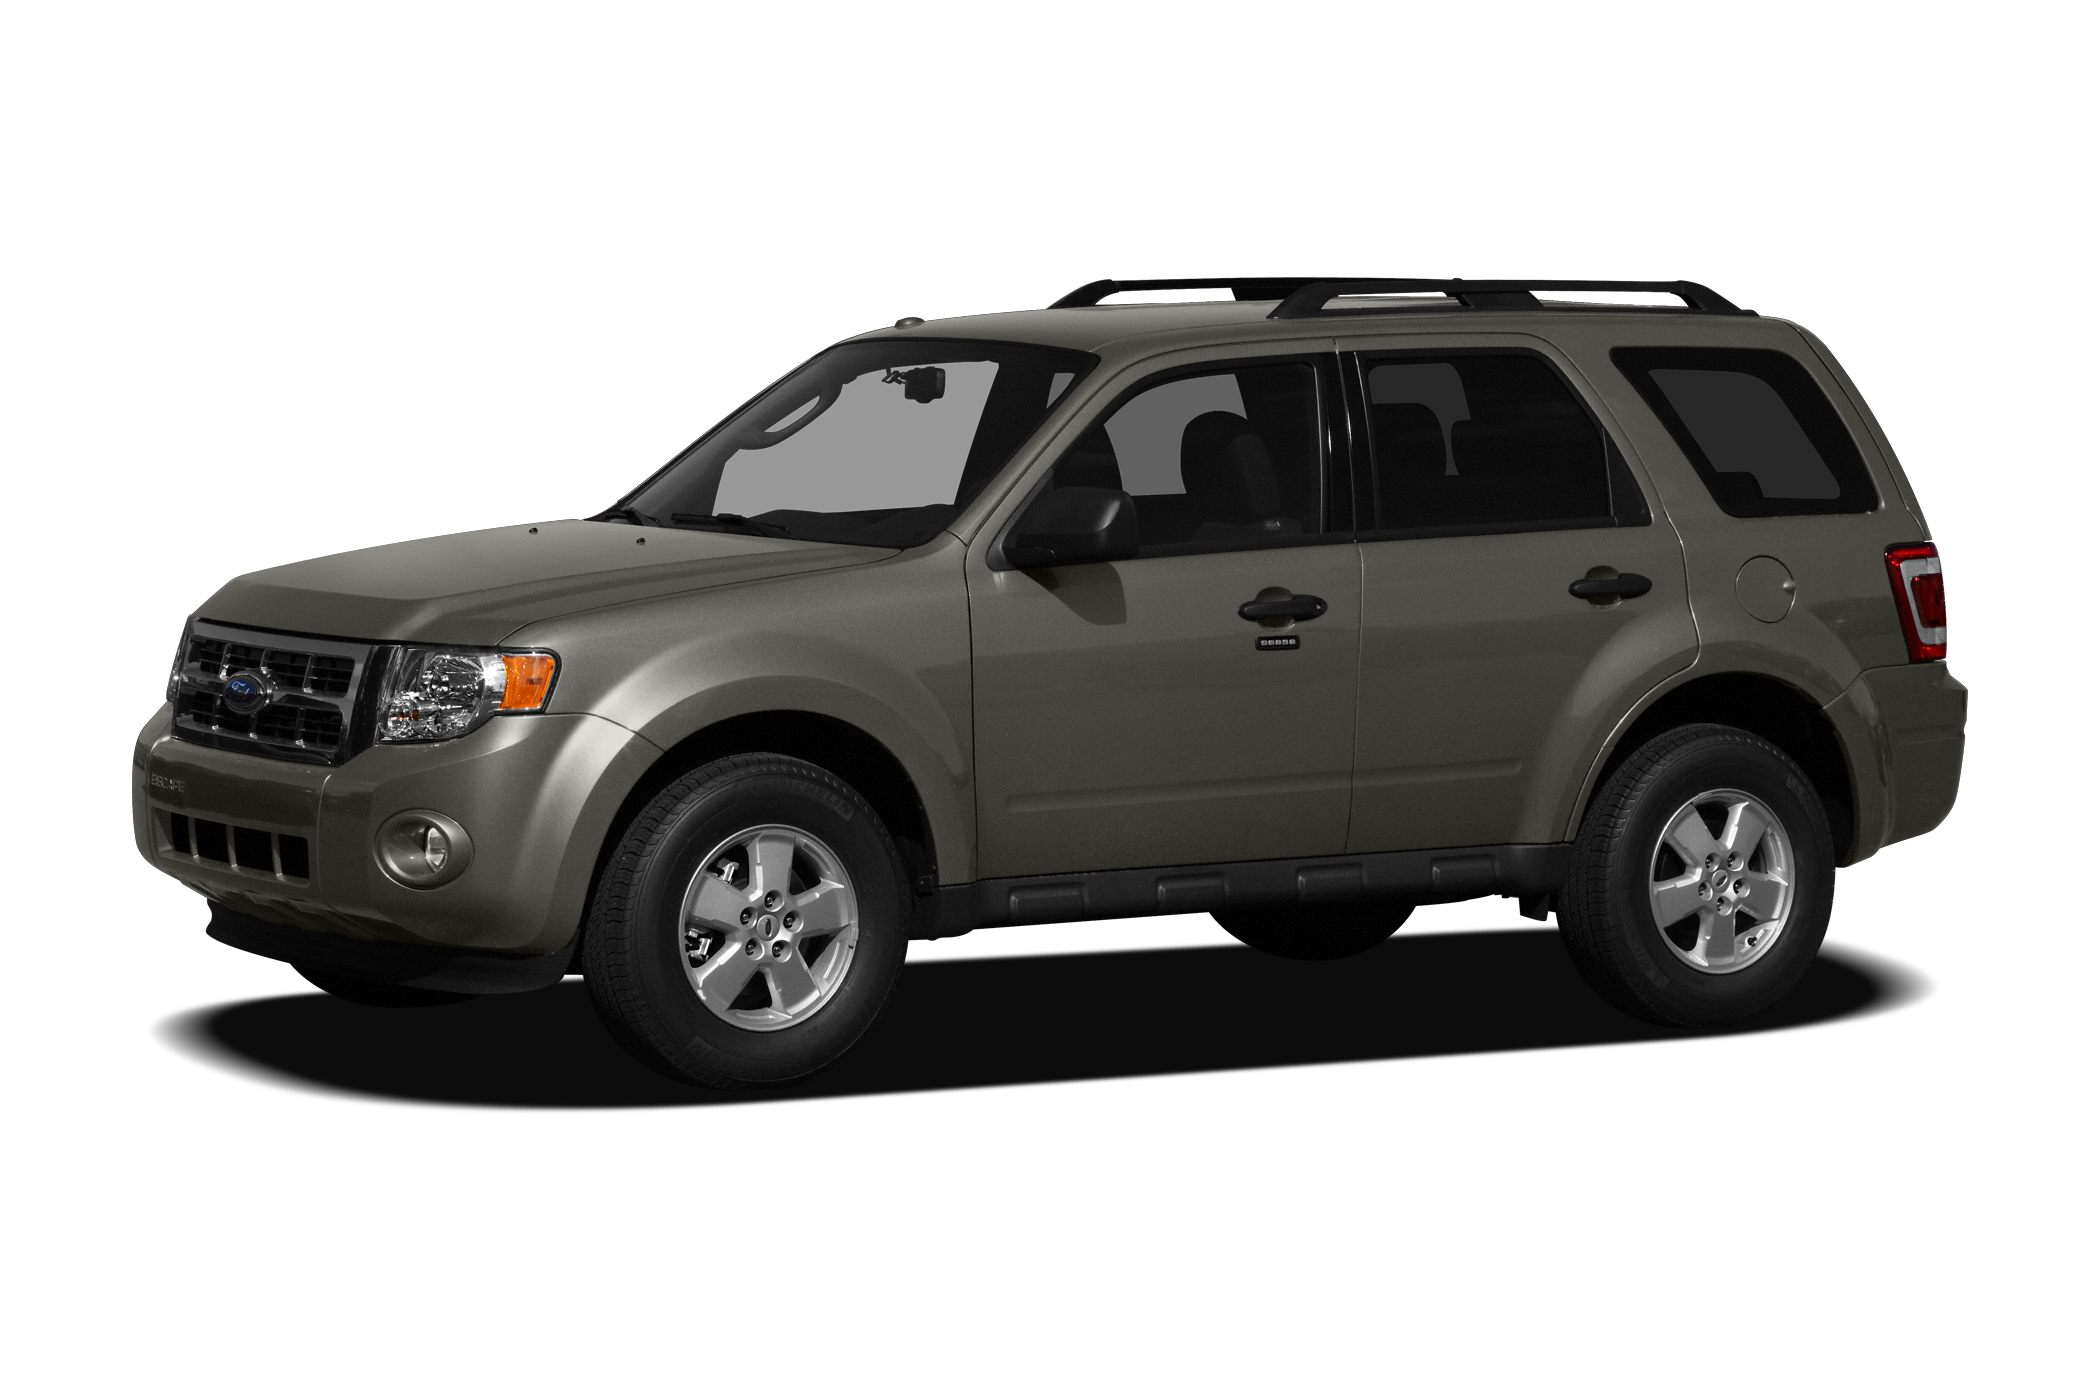 2011 Ford Escape XLT SUV for sale in Troy for $12,695 with 87,817 miles